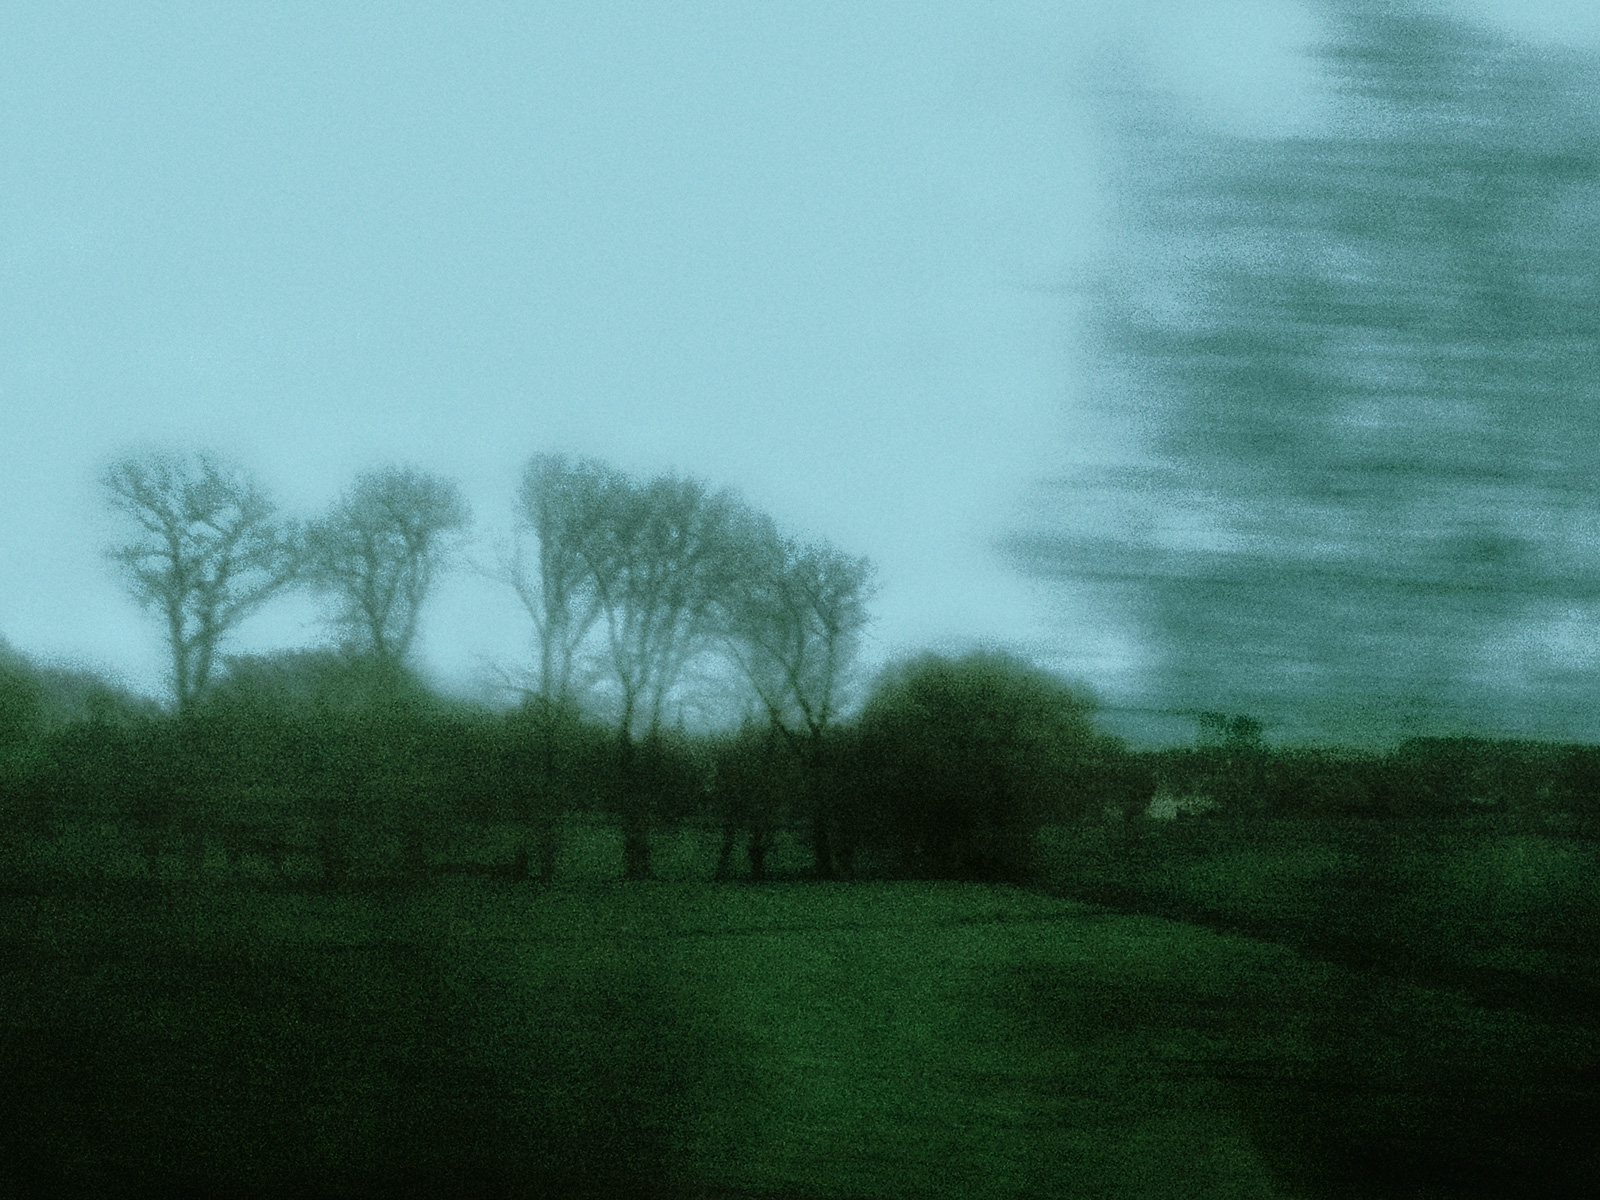 train_moving_field_and_trees